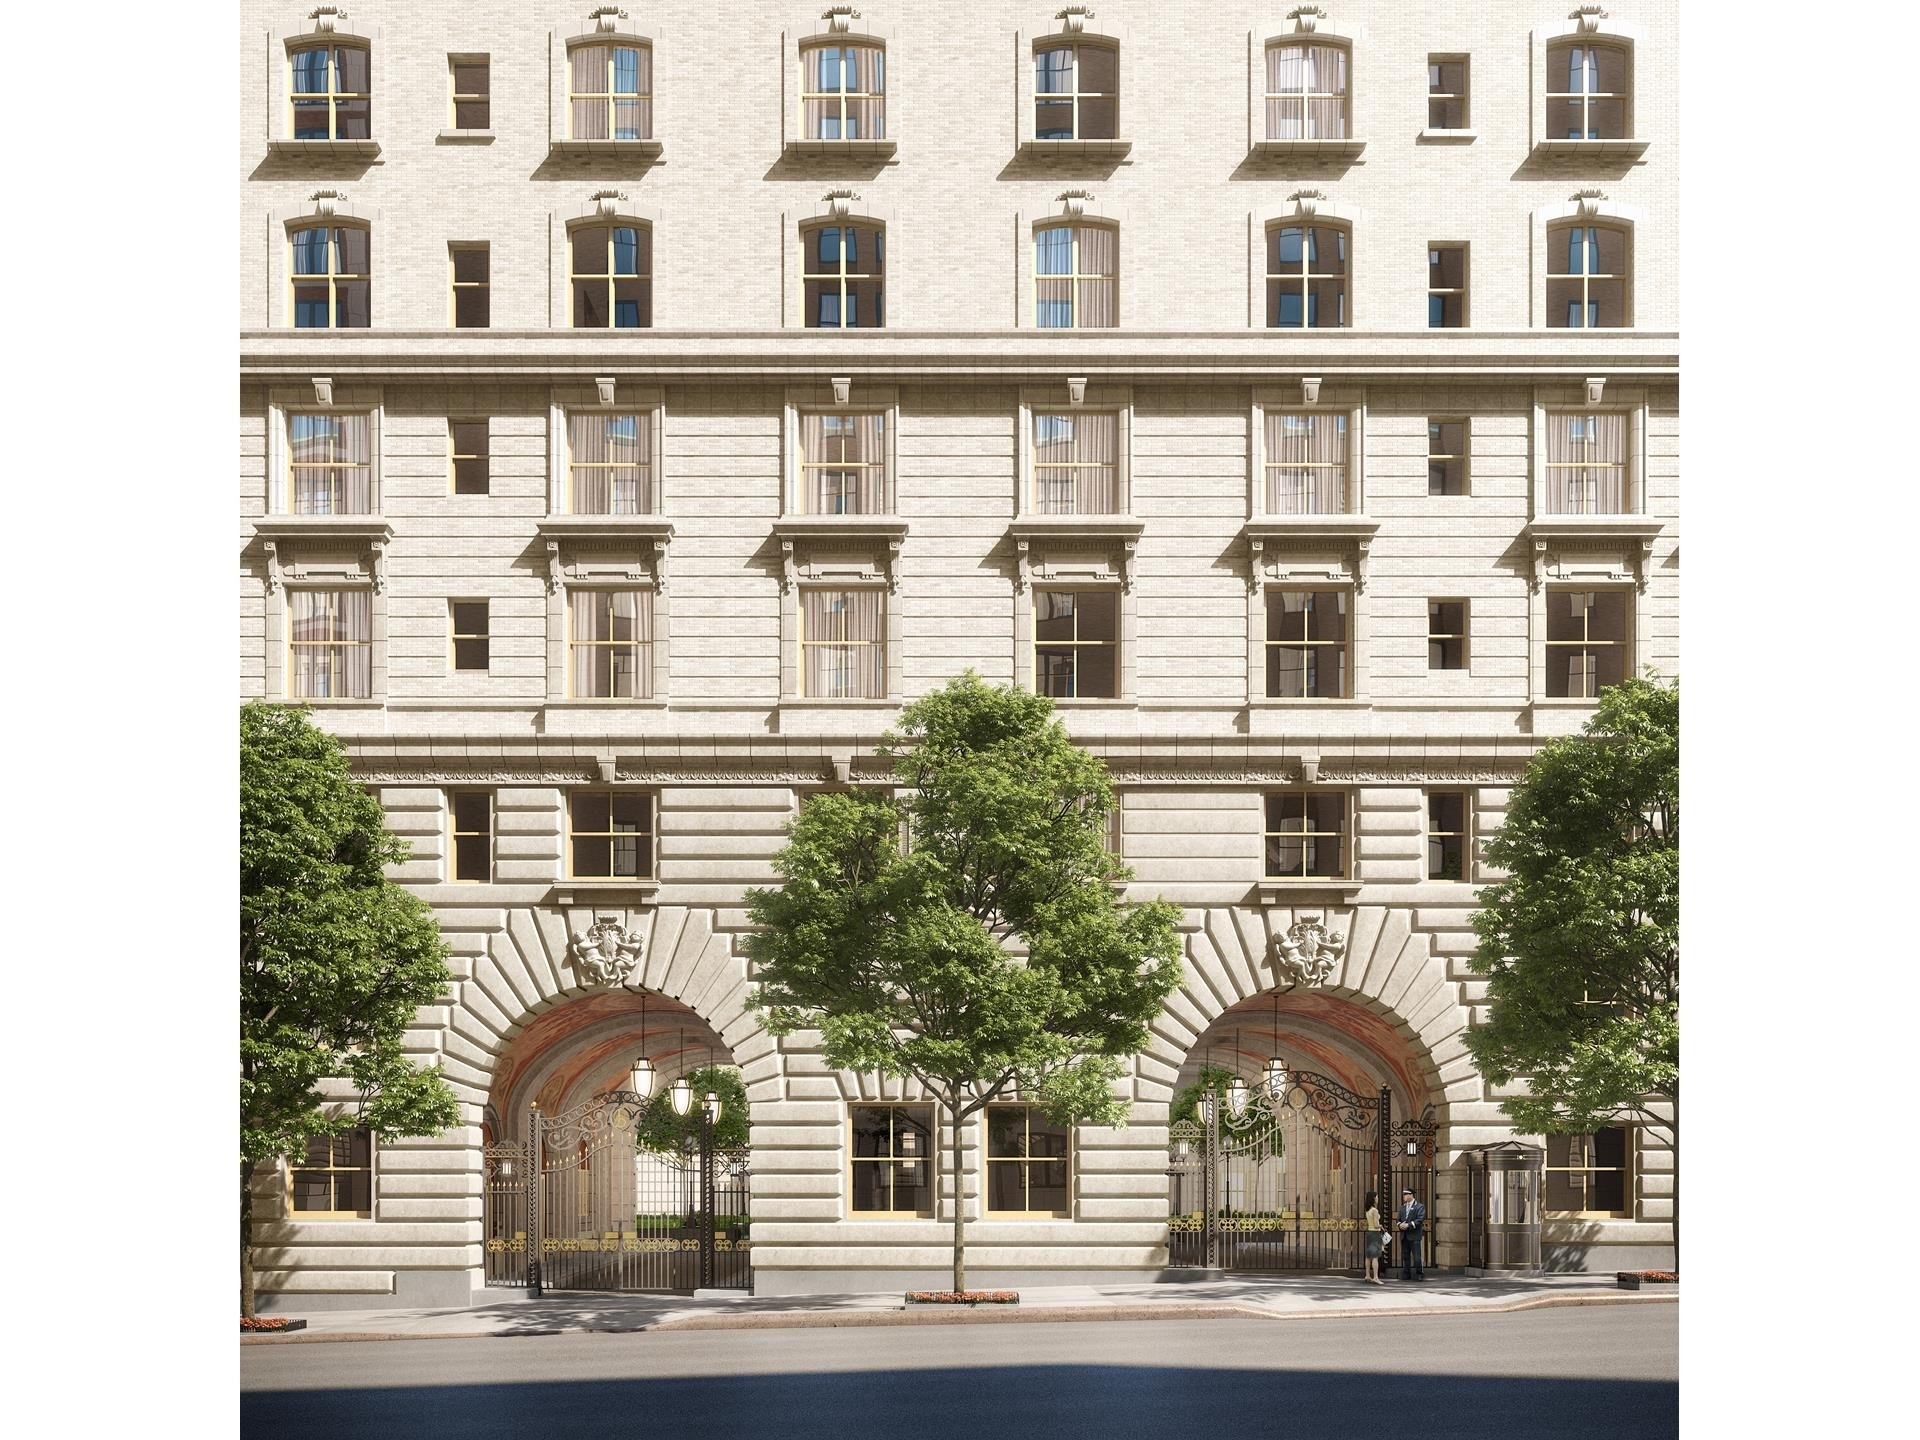 2. Condominiums for Sale at The Belnord, 225 West 86th St, 901 Upper West Side, New York, NY 10024